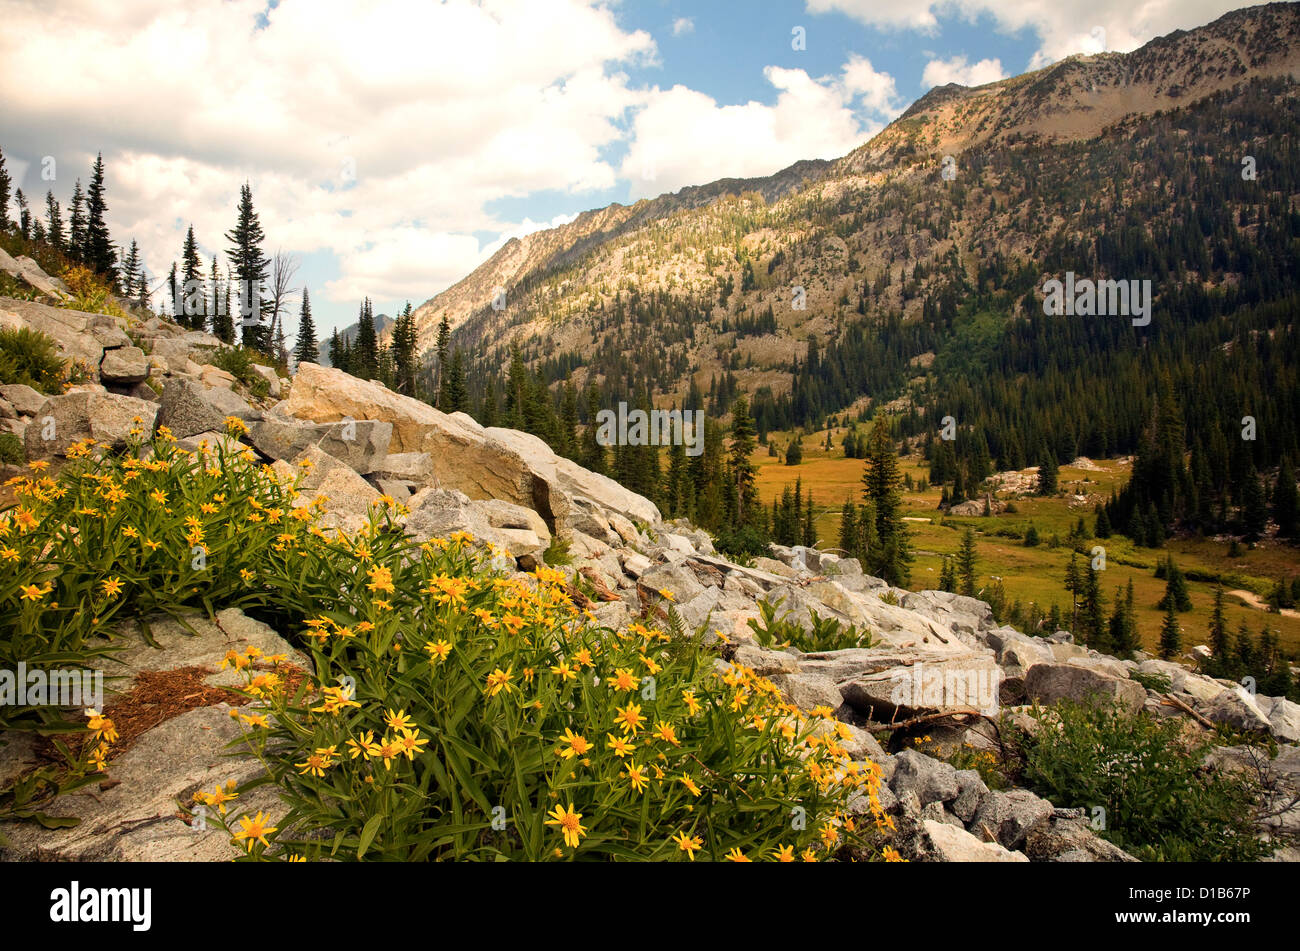 OREGON - The Hurricane Divide rising above the meadows of the East Lostine River Valley in the Eagle Cap Wilderness - Stock Image